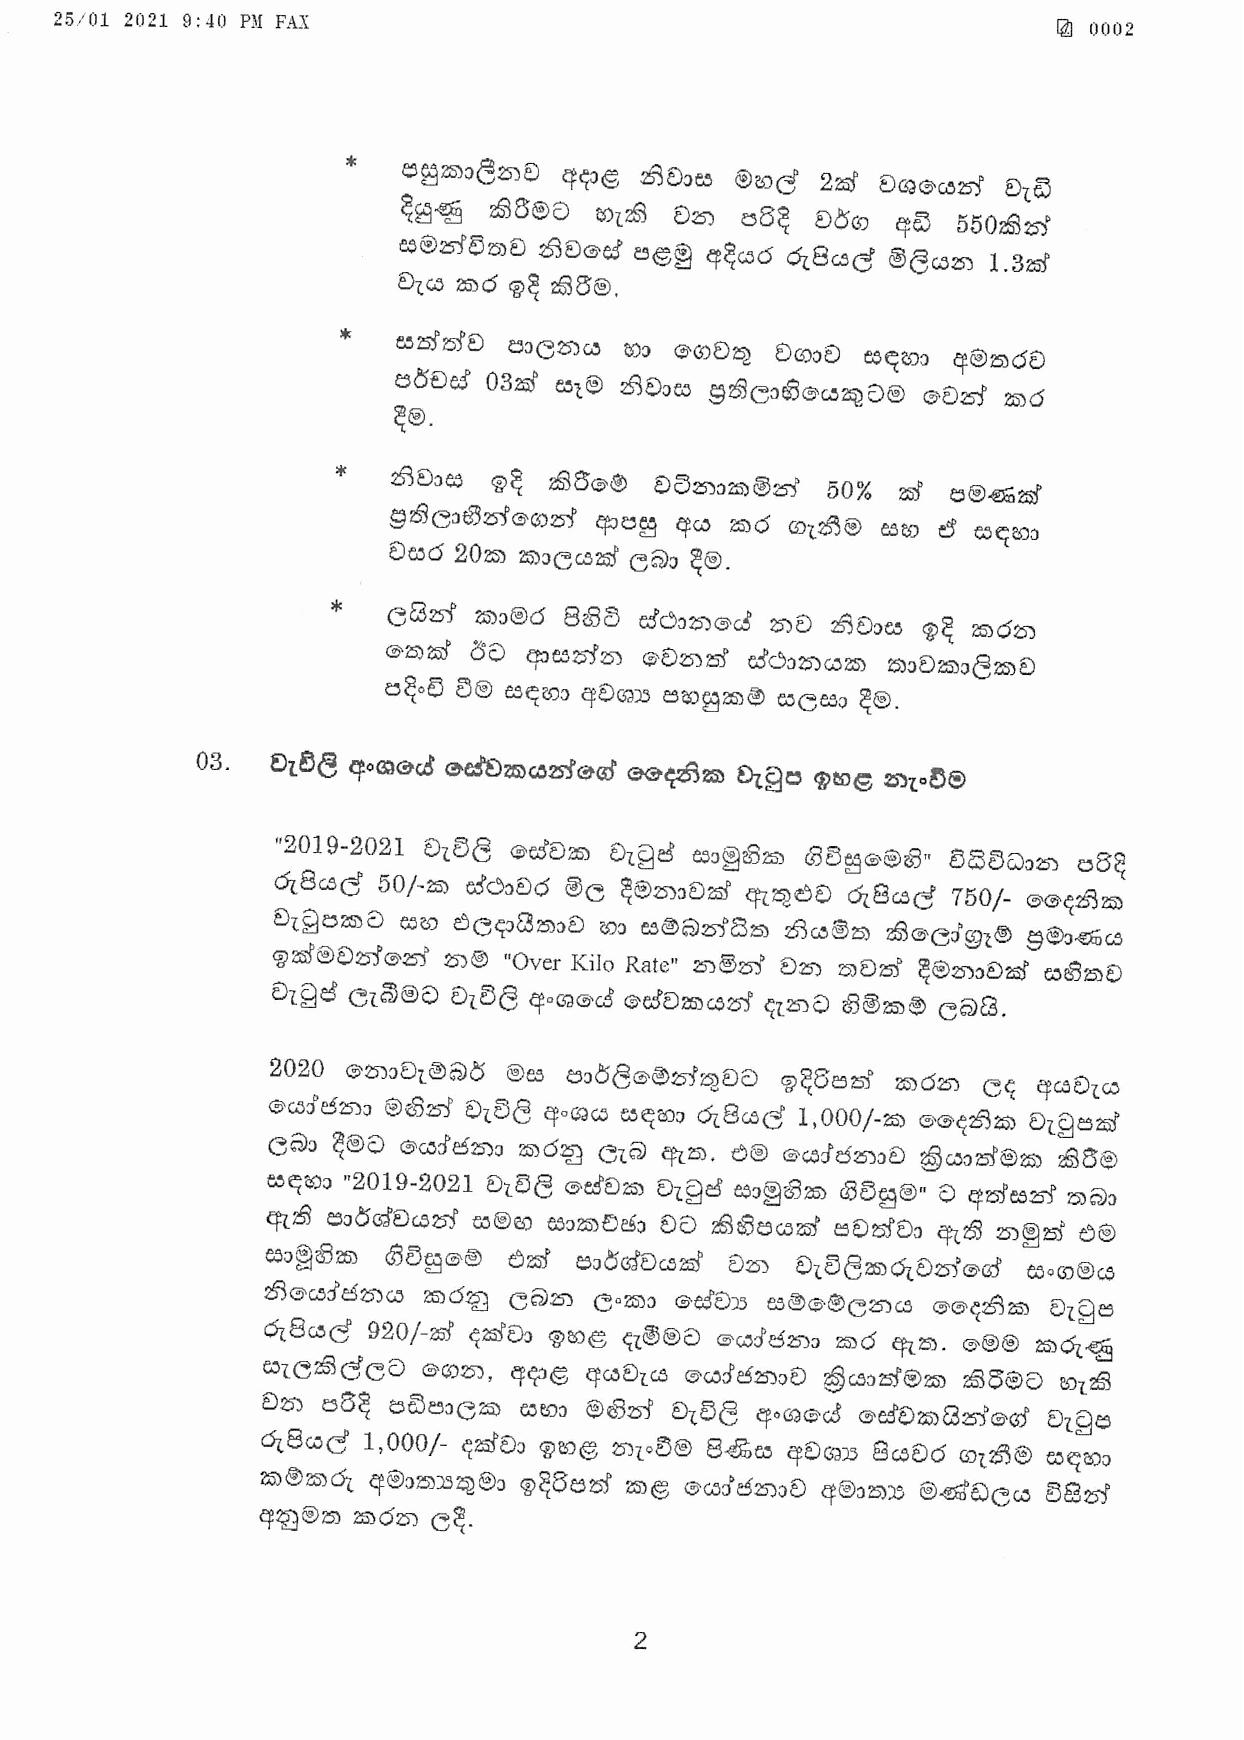 Cabinet Decision on 25.01.2021 page 002